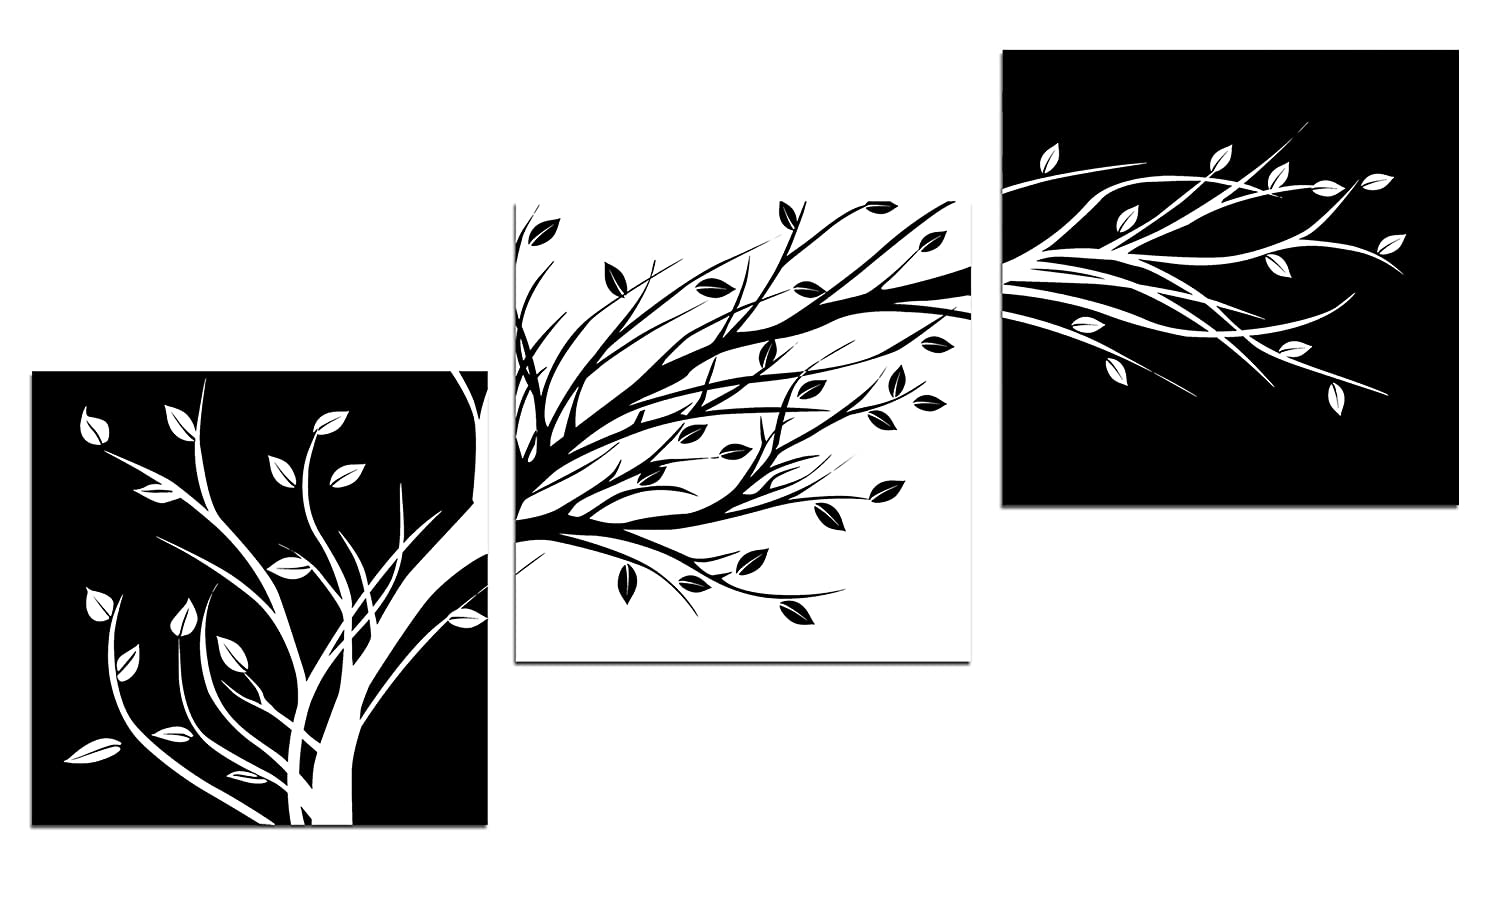 Wieco art leaves modern 3 panels flowers artwork giclee canvas prints black and white abstract floral trees pictures paintings on canvas wall art for living